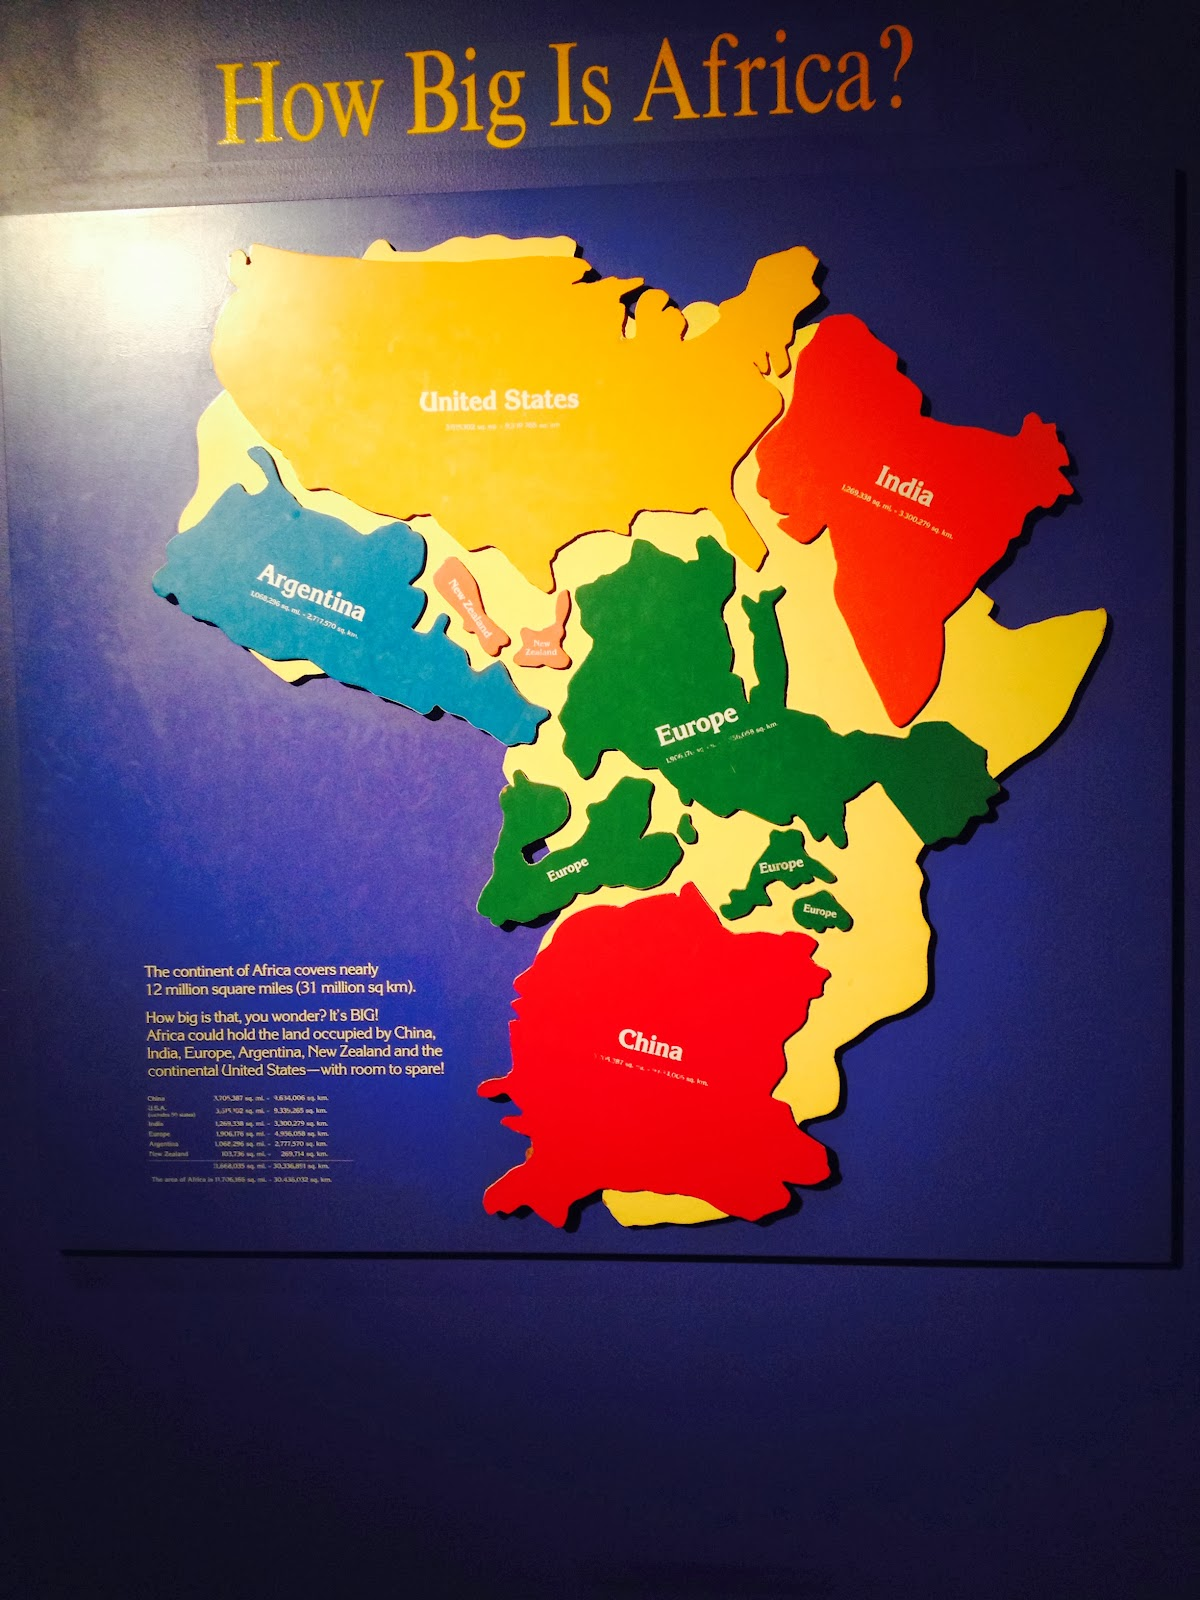 How big is Africa?  12 million square miles